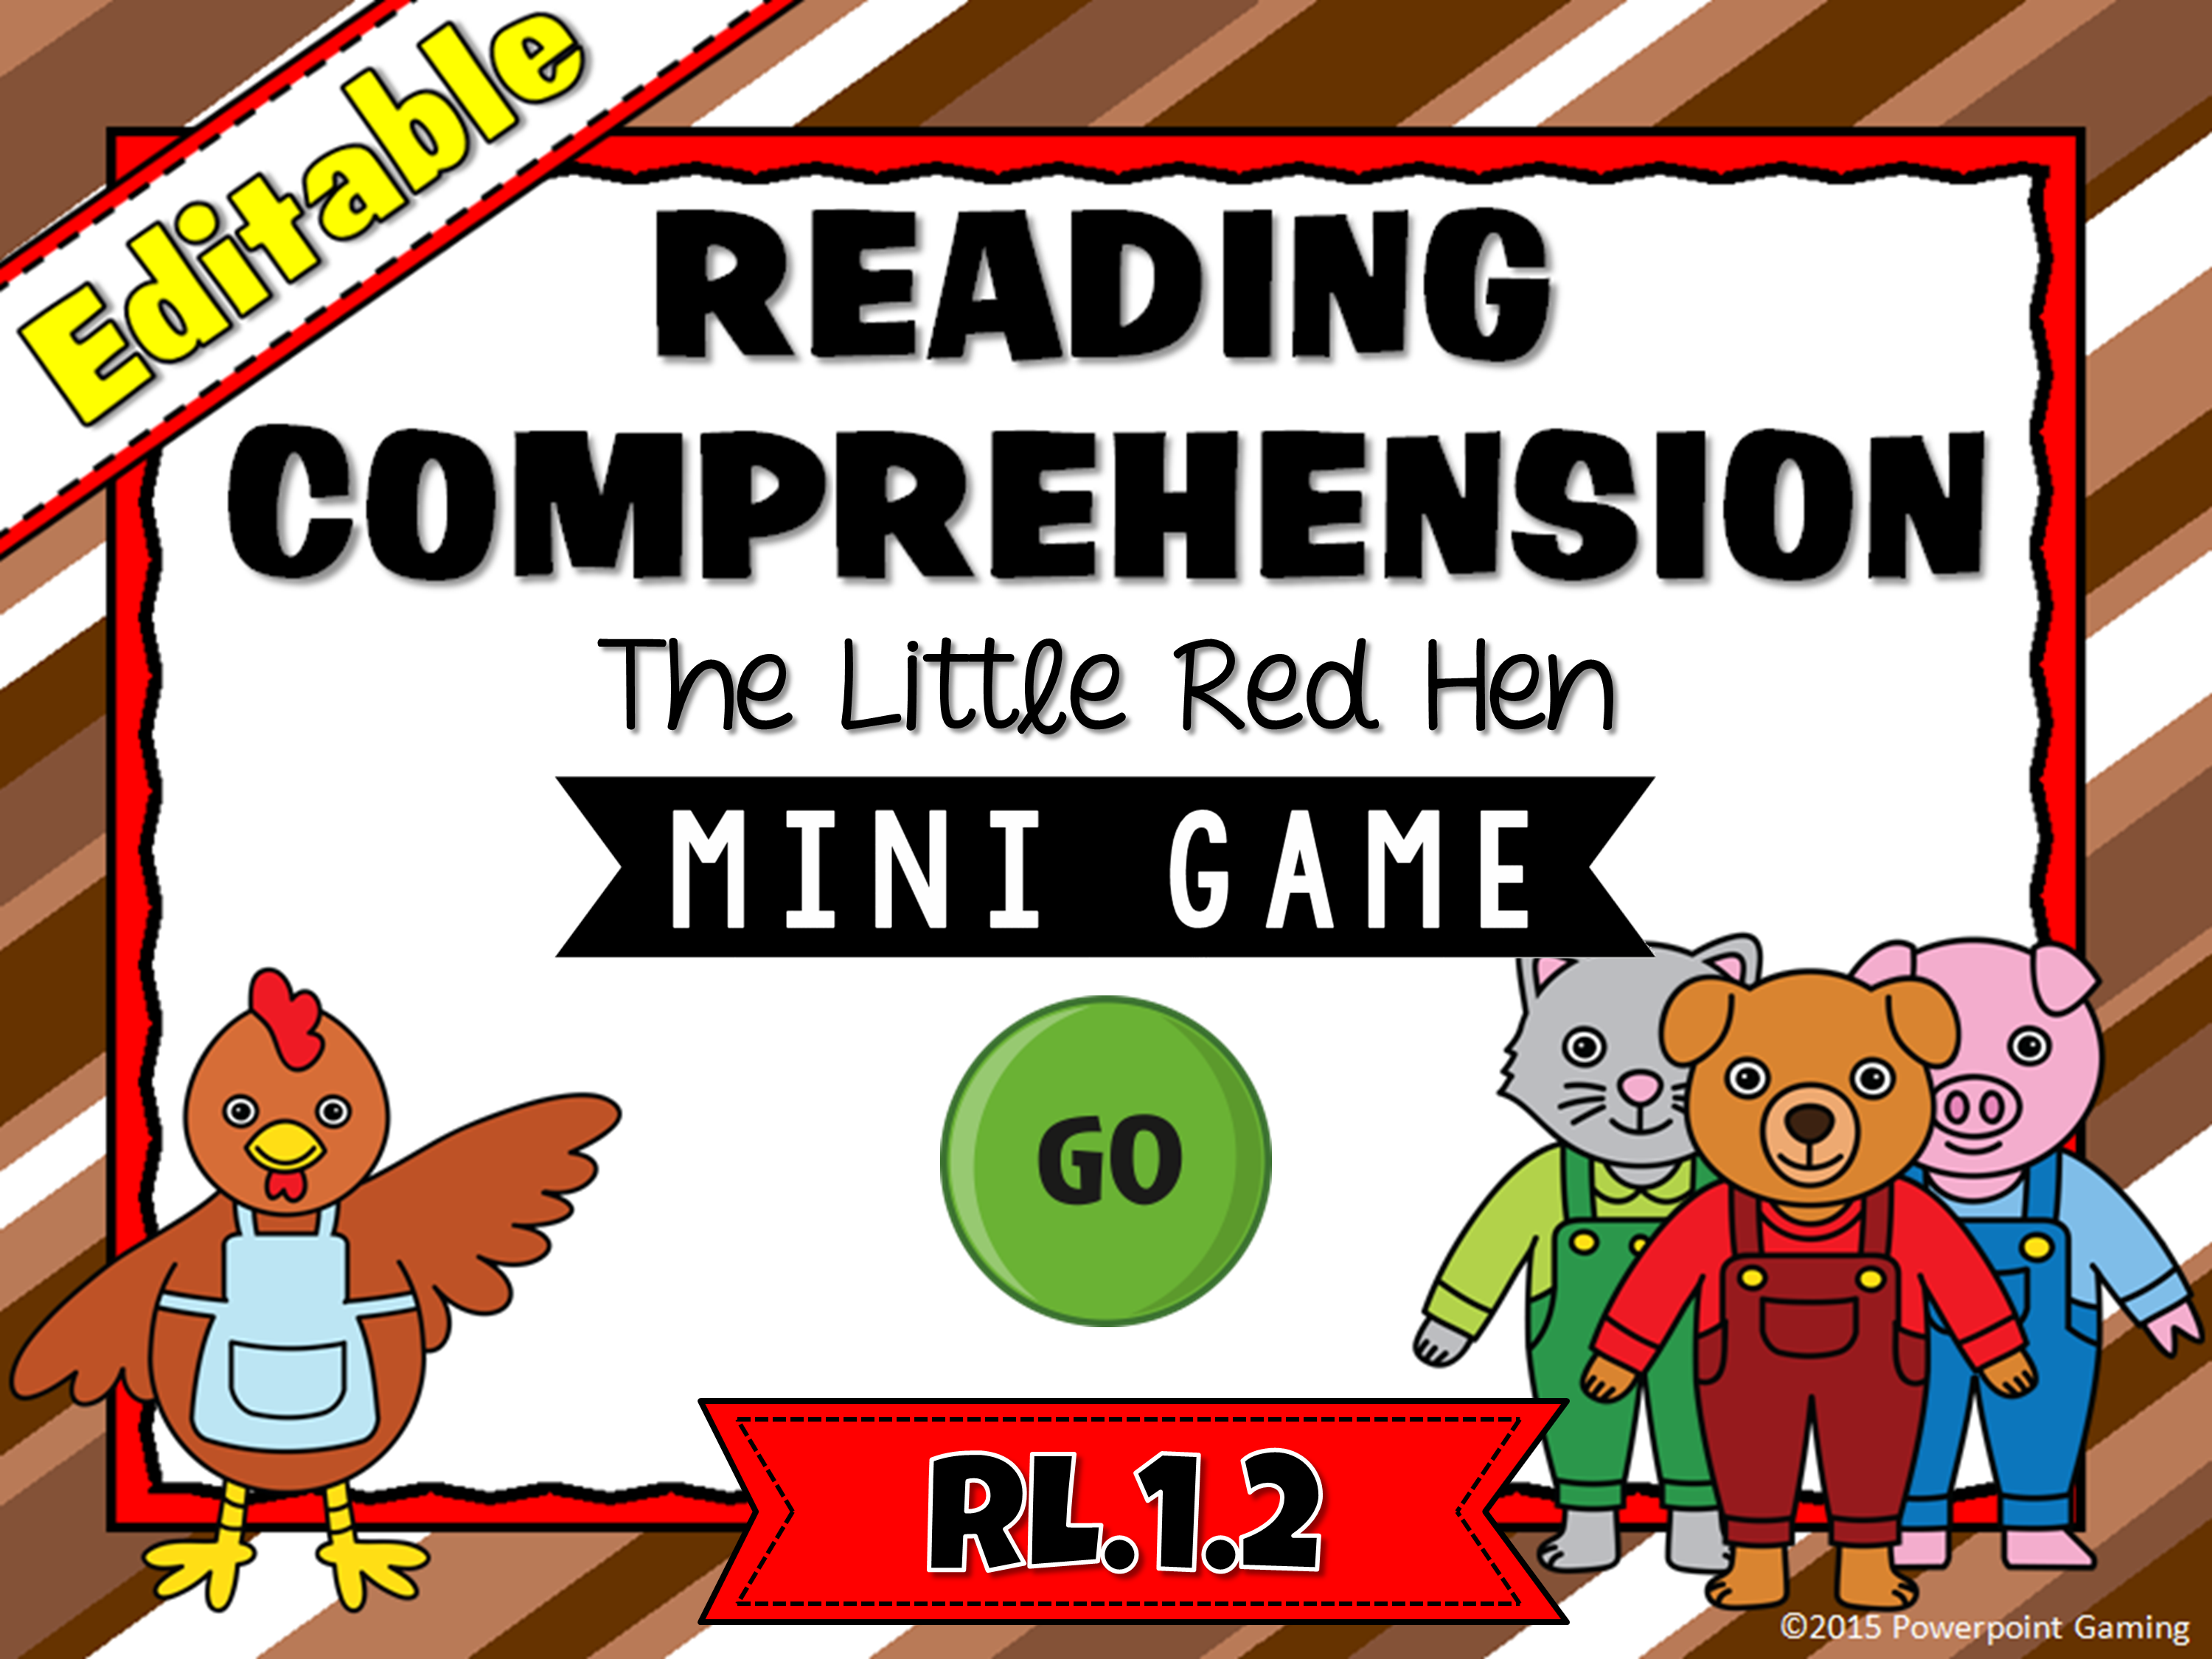 Reading Comprehension - The Little Red Hen Mini Game